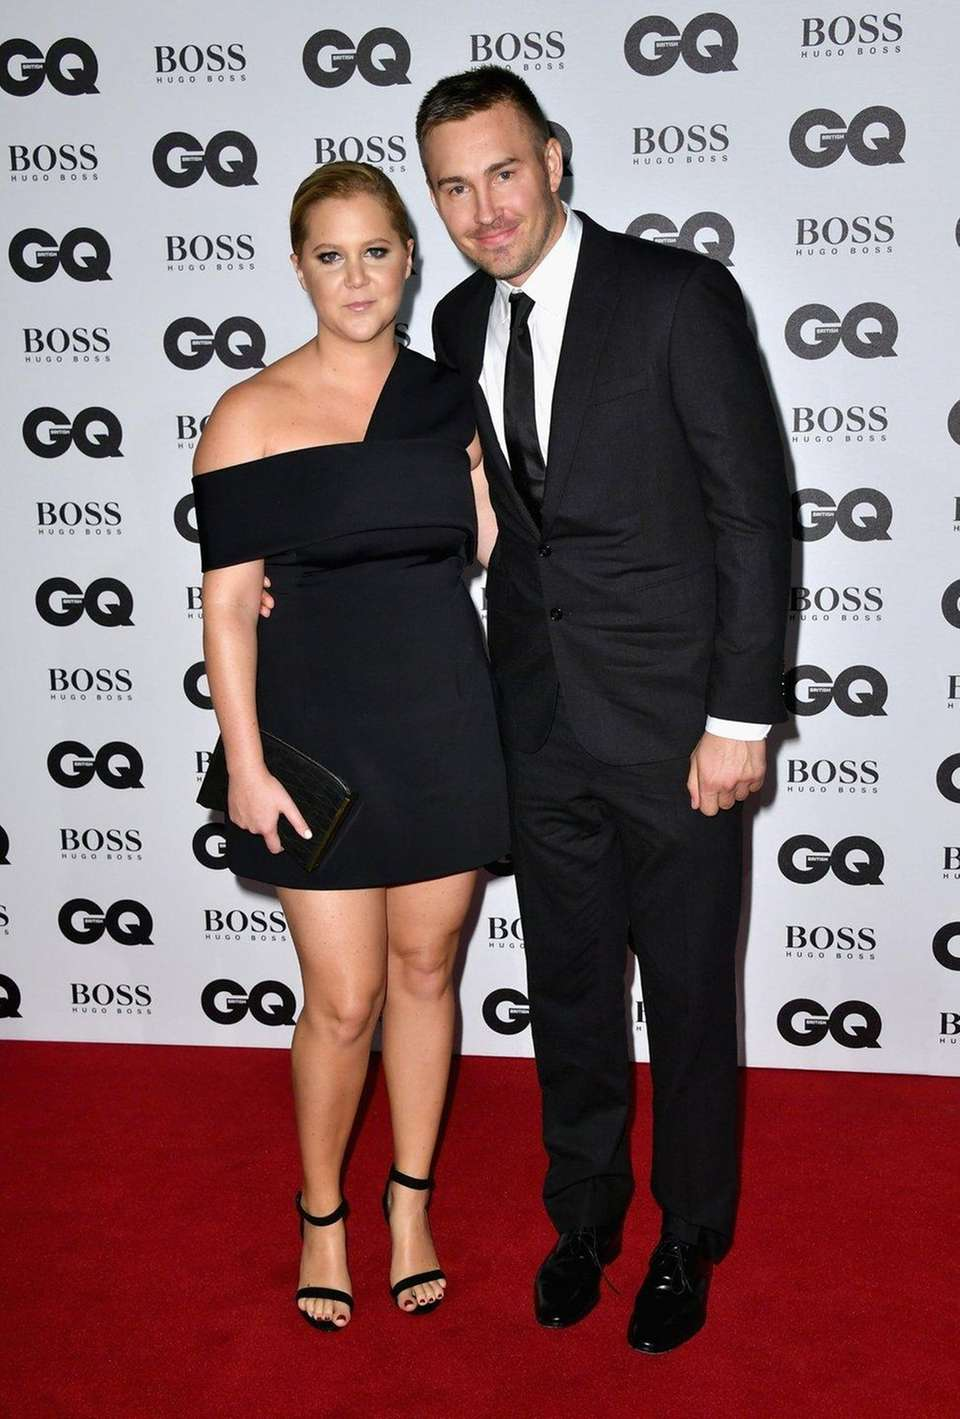 Amy Schumer and furniture designer Ben Hanisch broke